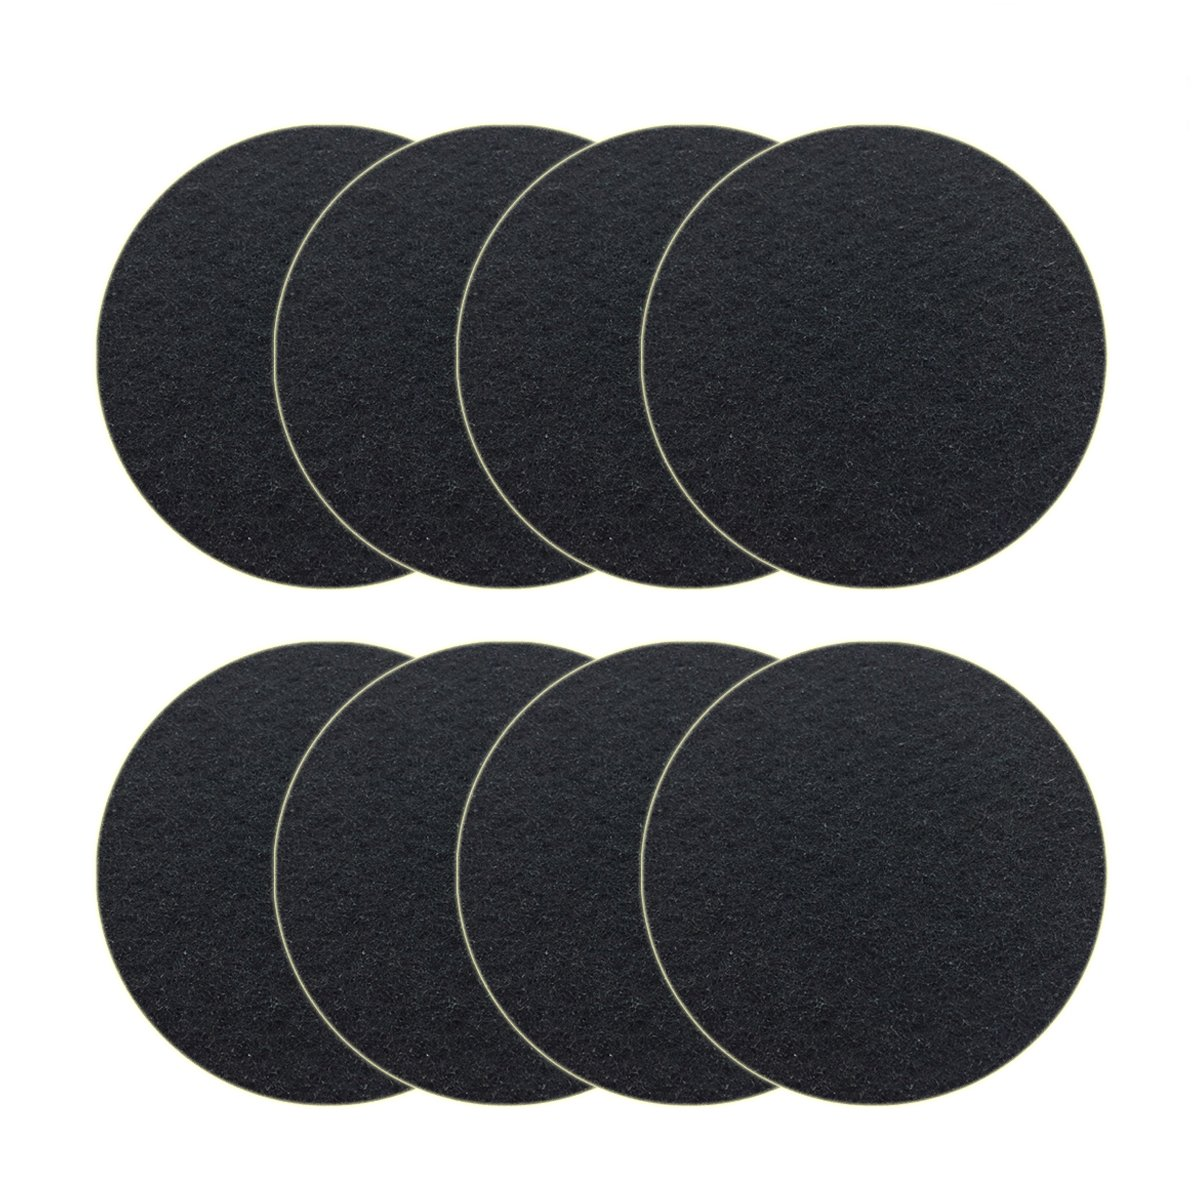 8 Pack Kitchen Compost Bin Charcoal Filter Replacements, Compost Pail Replacement Carbon Filters 7.25 inch, Round